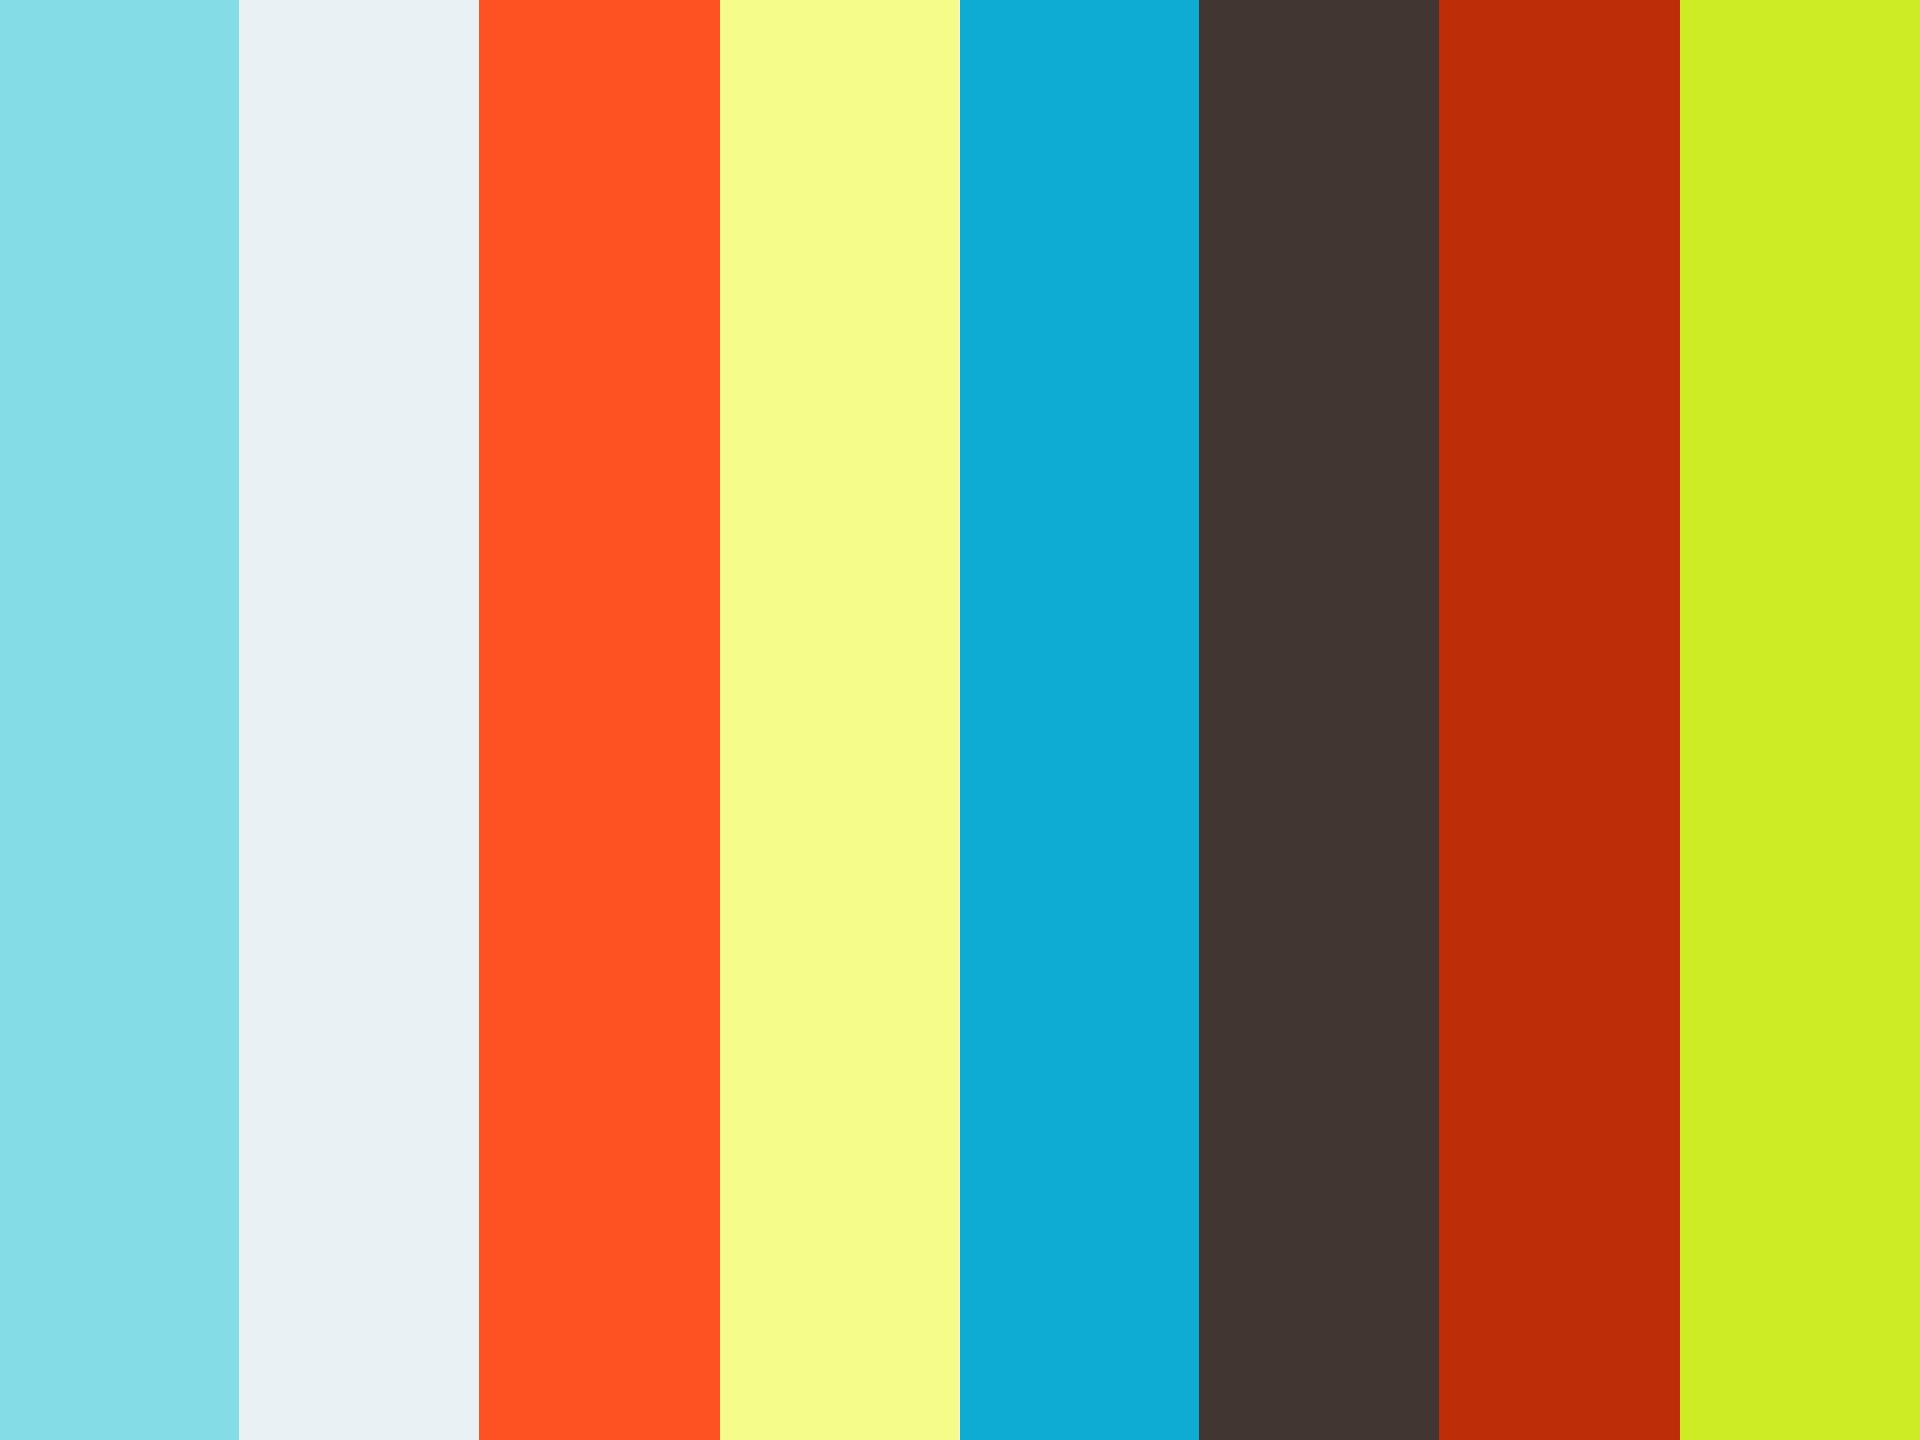 Liposomal Bupivacaine Use in Transversus Abdominis Plane Blocks Reduces Pain 2016